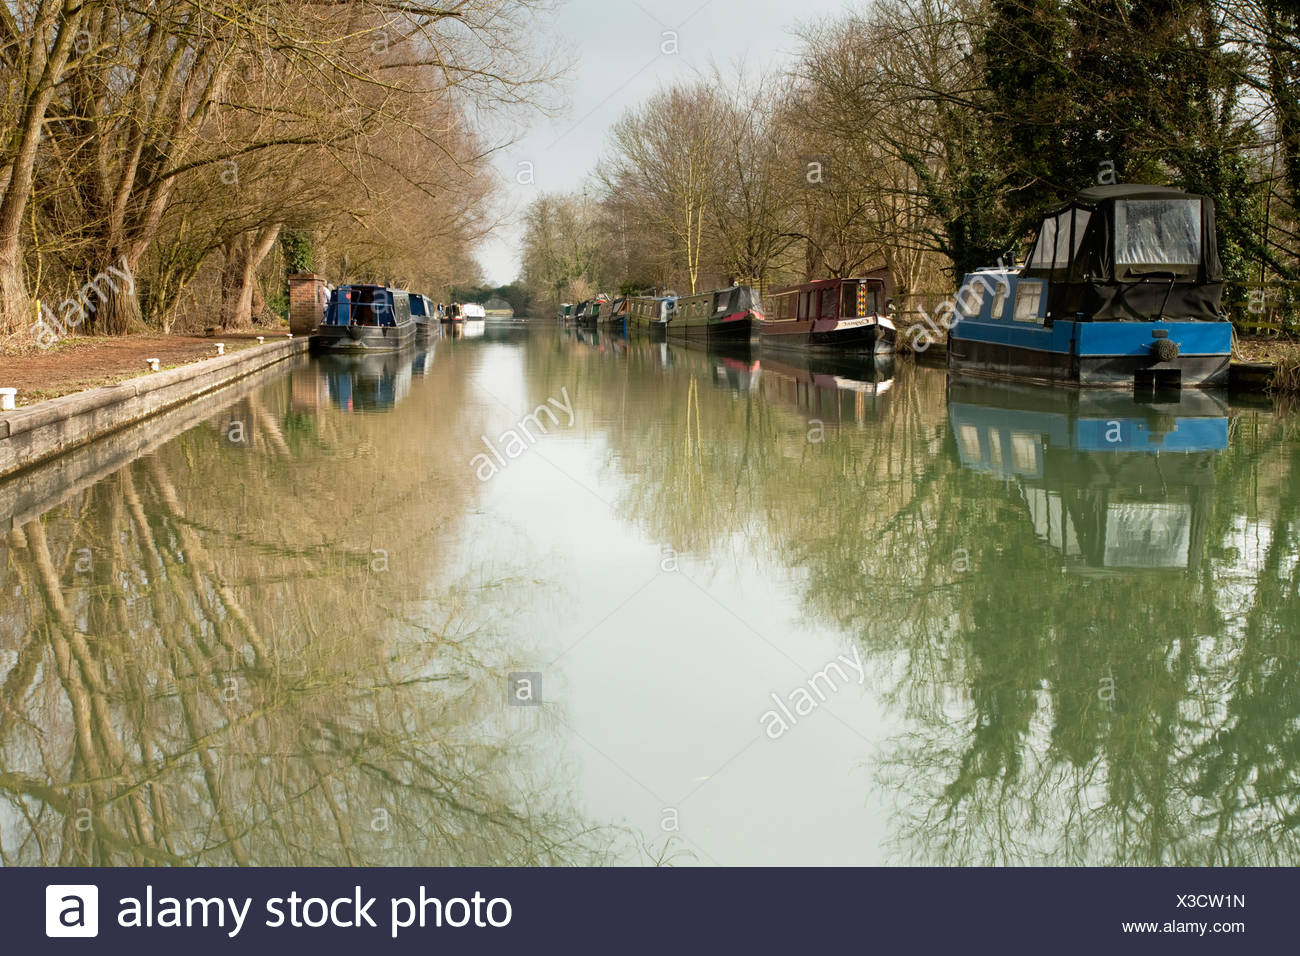 The Kennet and Avon Canal at Kintbury, Berkshire, Uk - Stock Image